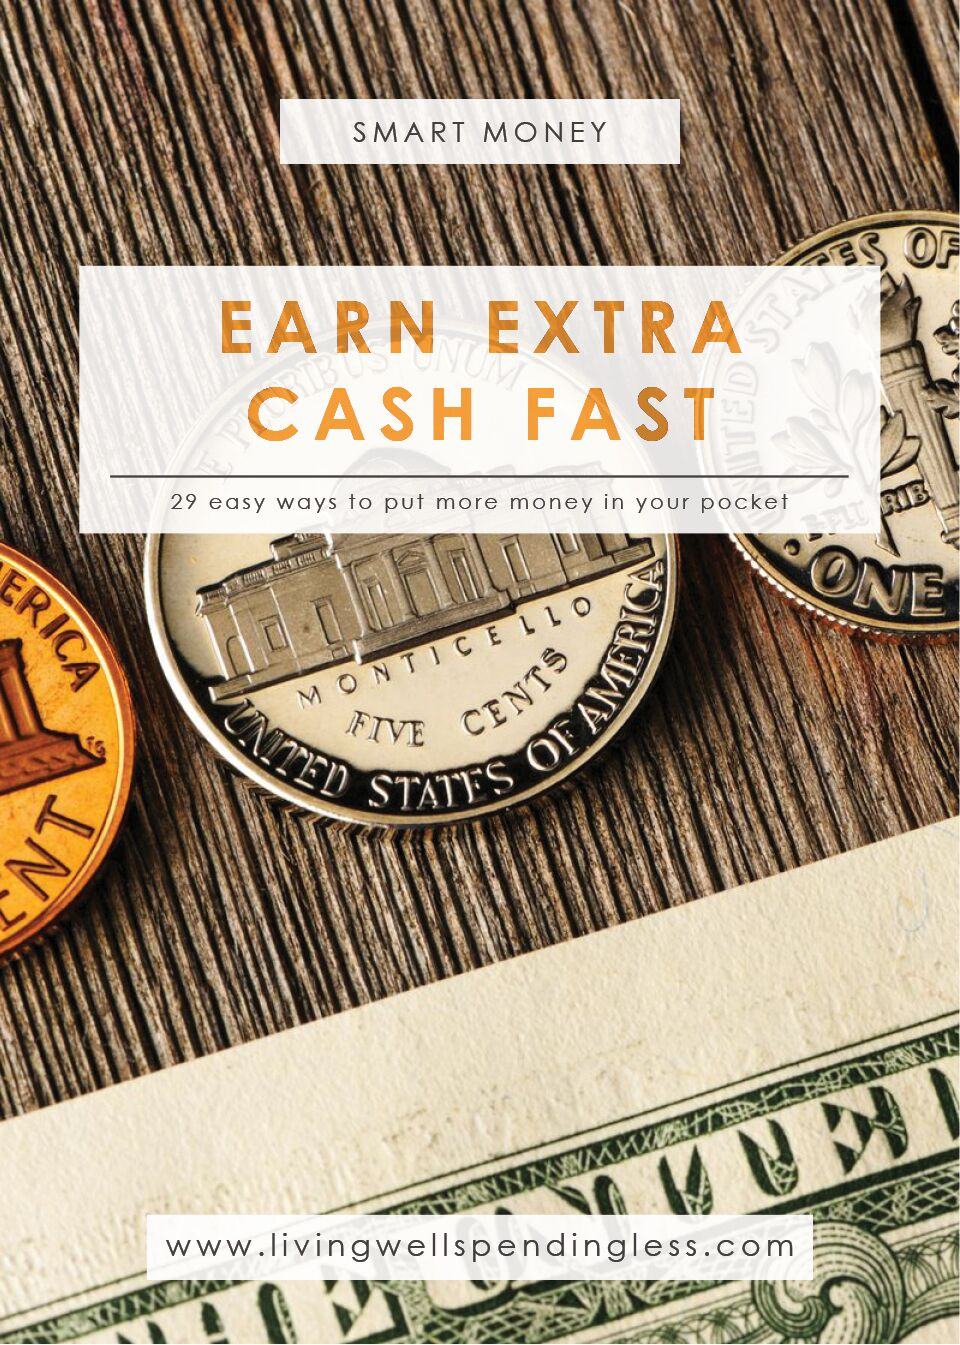 Easy ways to earn extra cash fast.